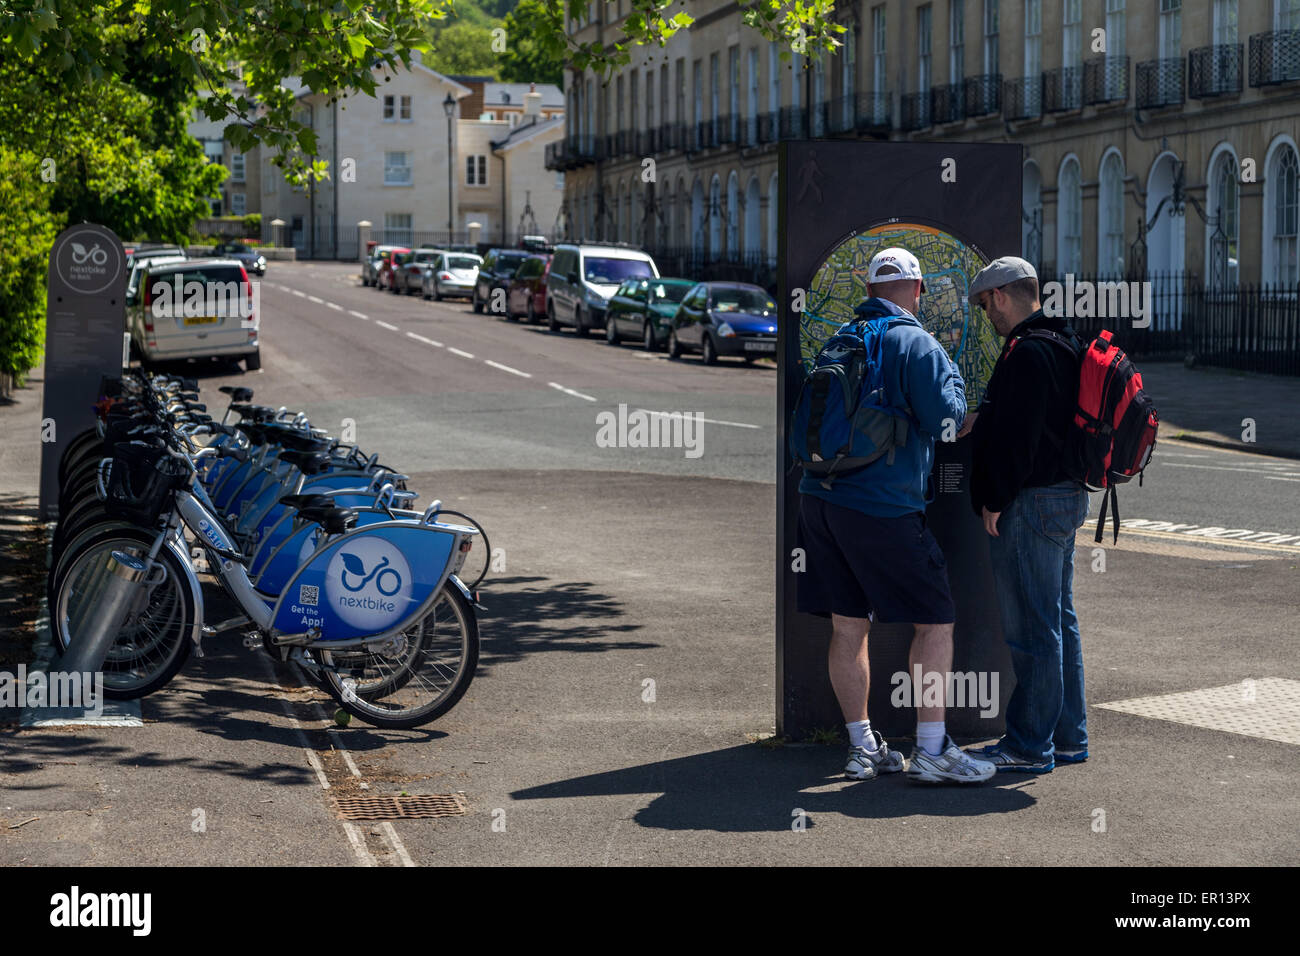 Two tourist men reading an information map notice next to electric hire bikes in City of Bath, UK - Stock Image